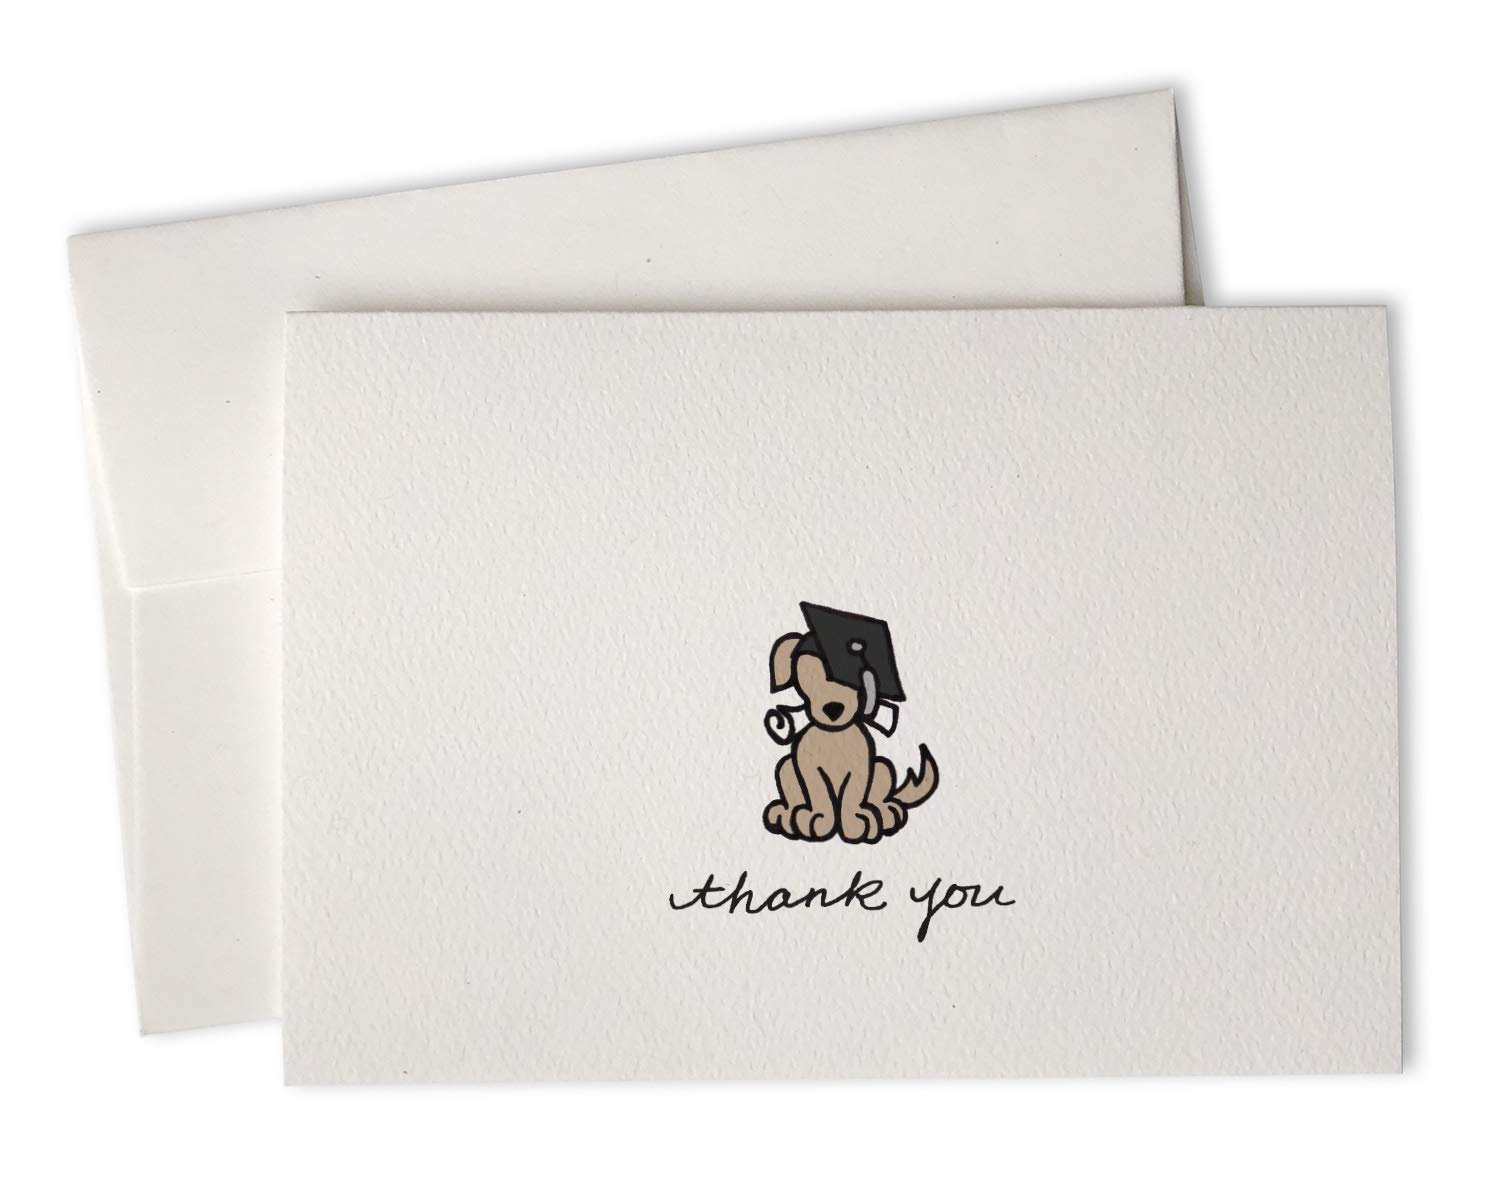 Grad Dog Eco-Friendly Premium Textured Graduation Thank You Cards - For Graduates and Students - Hand-Drawn Thank You Notes by Sugartown Greetings - 24 Cards with Envelopes